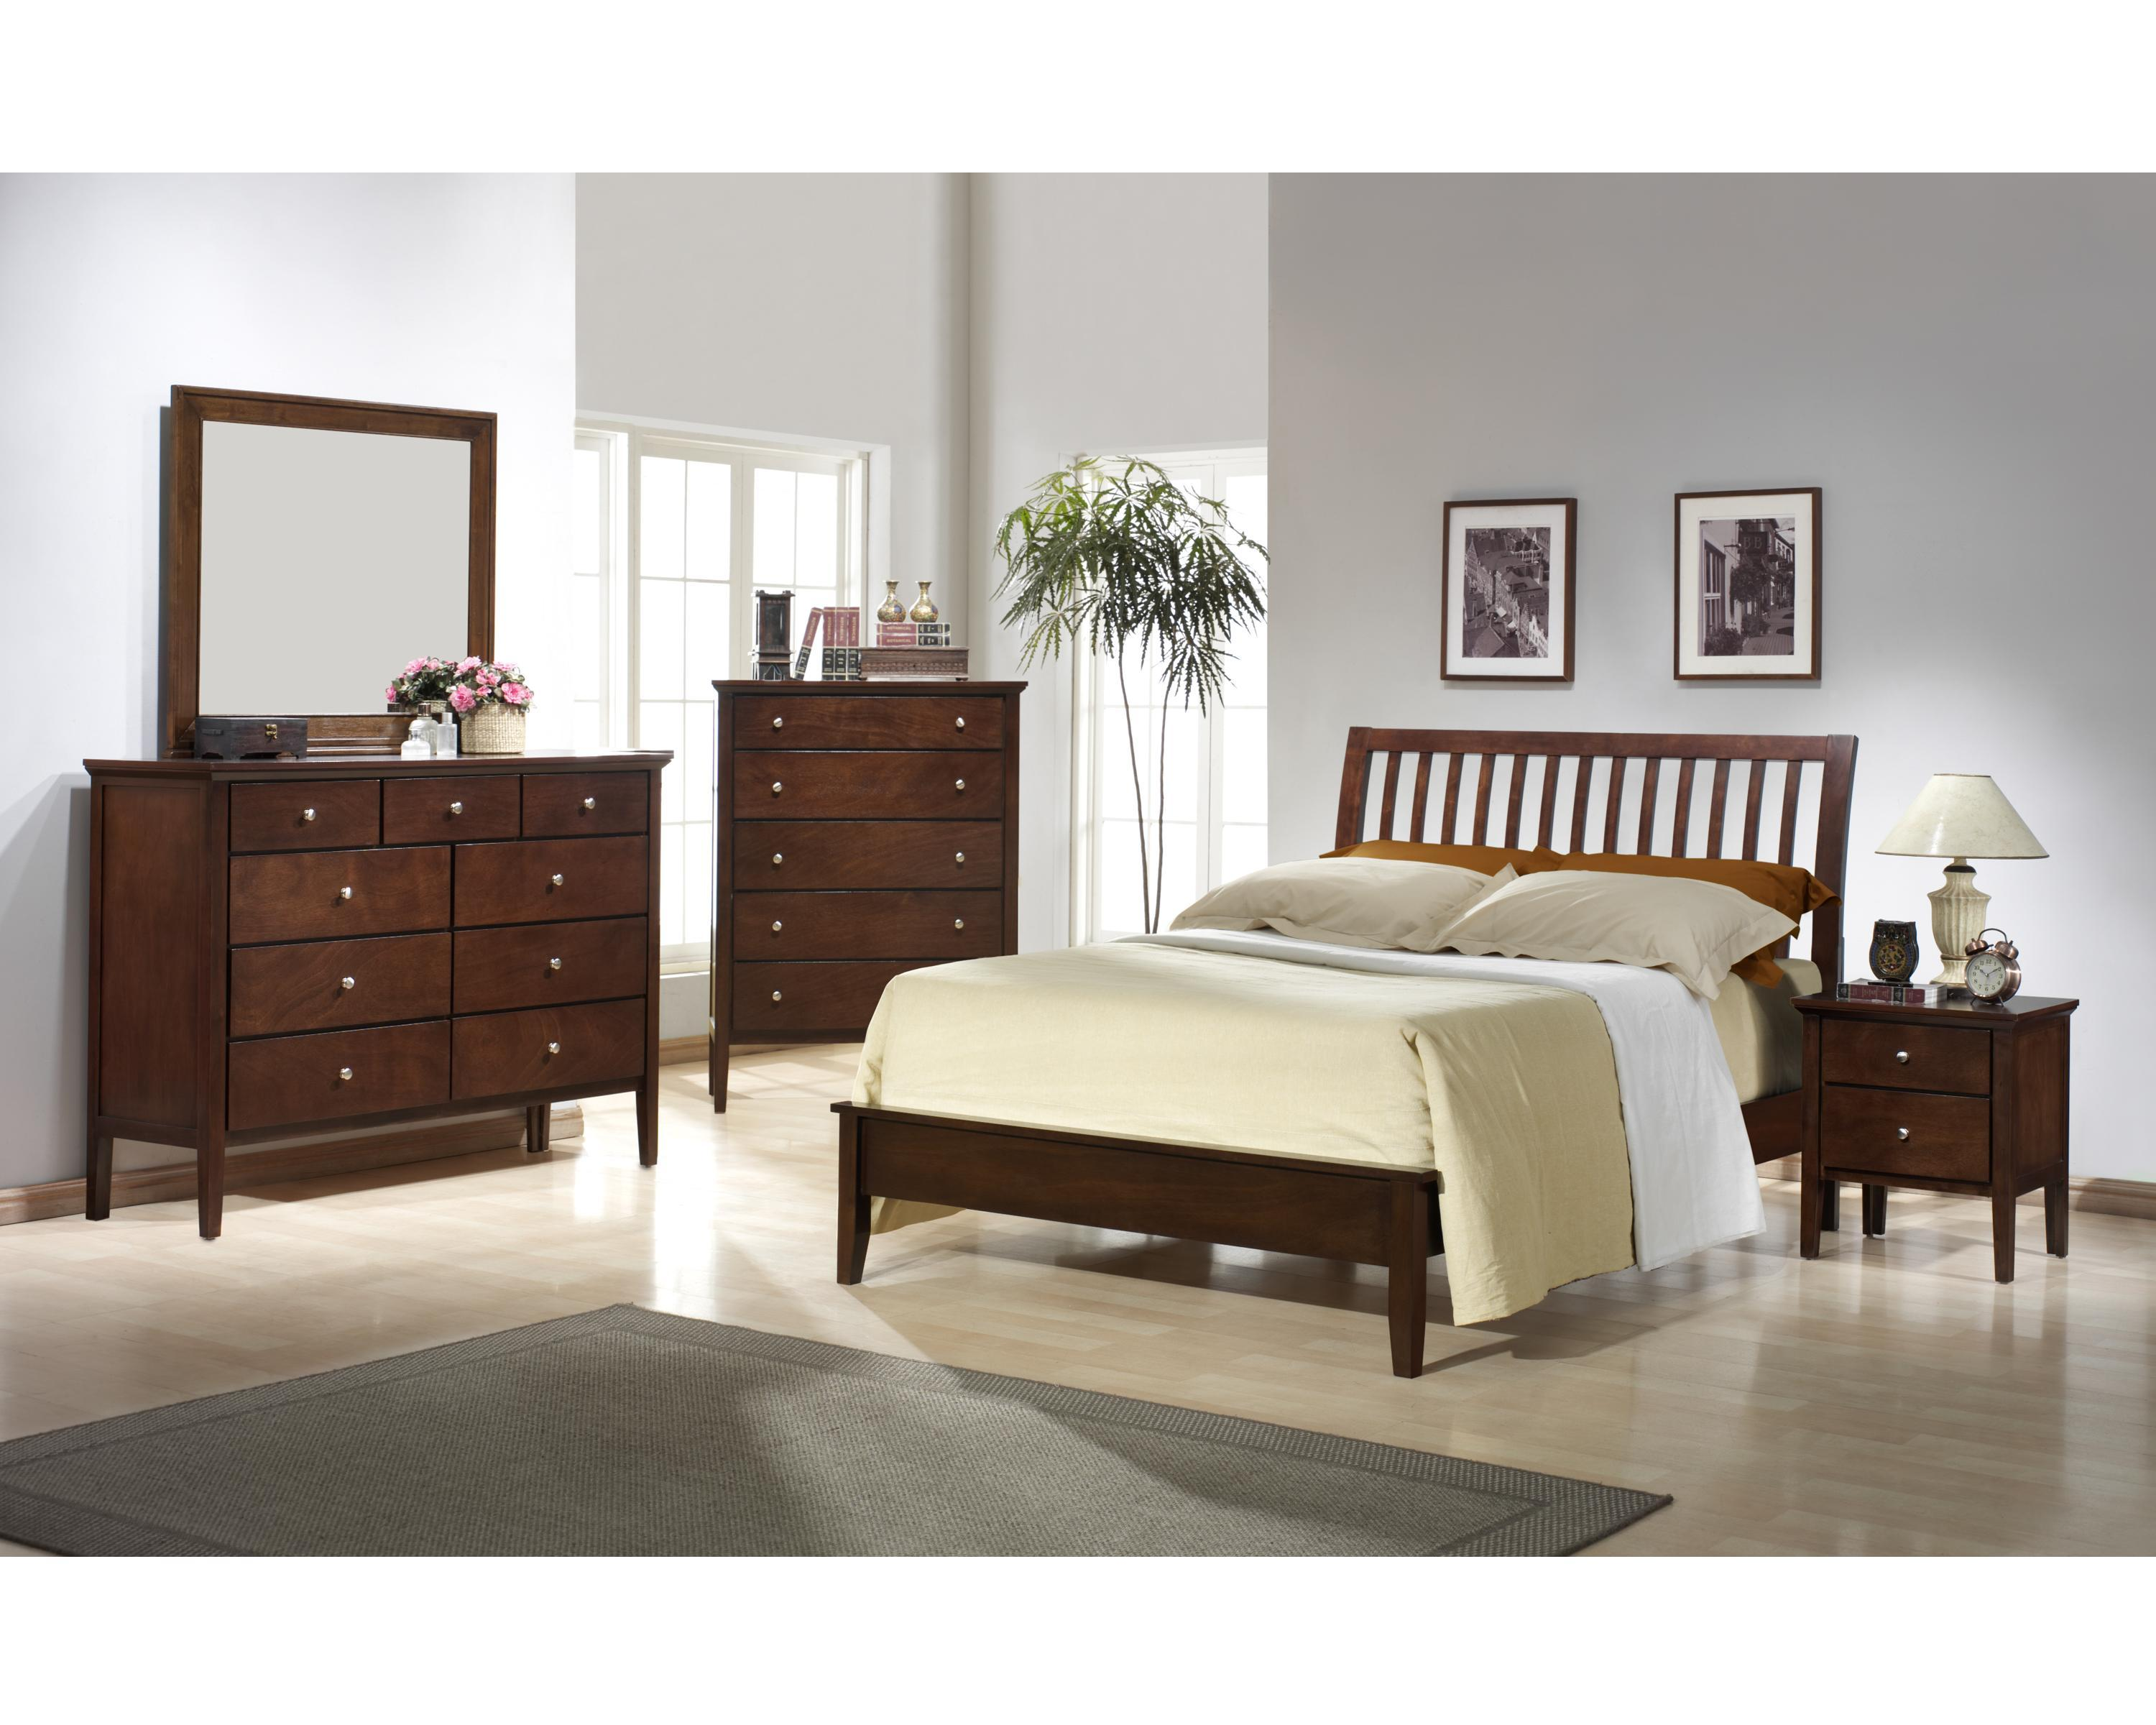 House Central Park Bedroom Group Item Number 5502 Q Bedroom Group 1